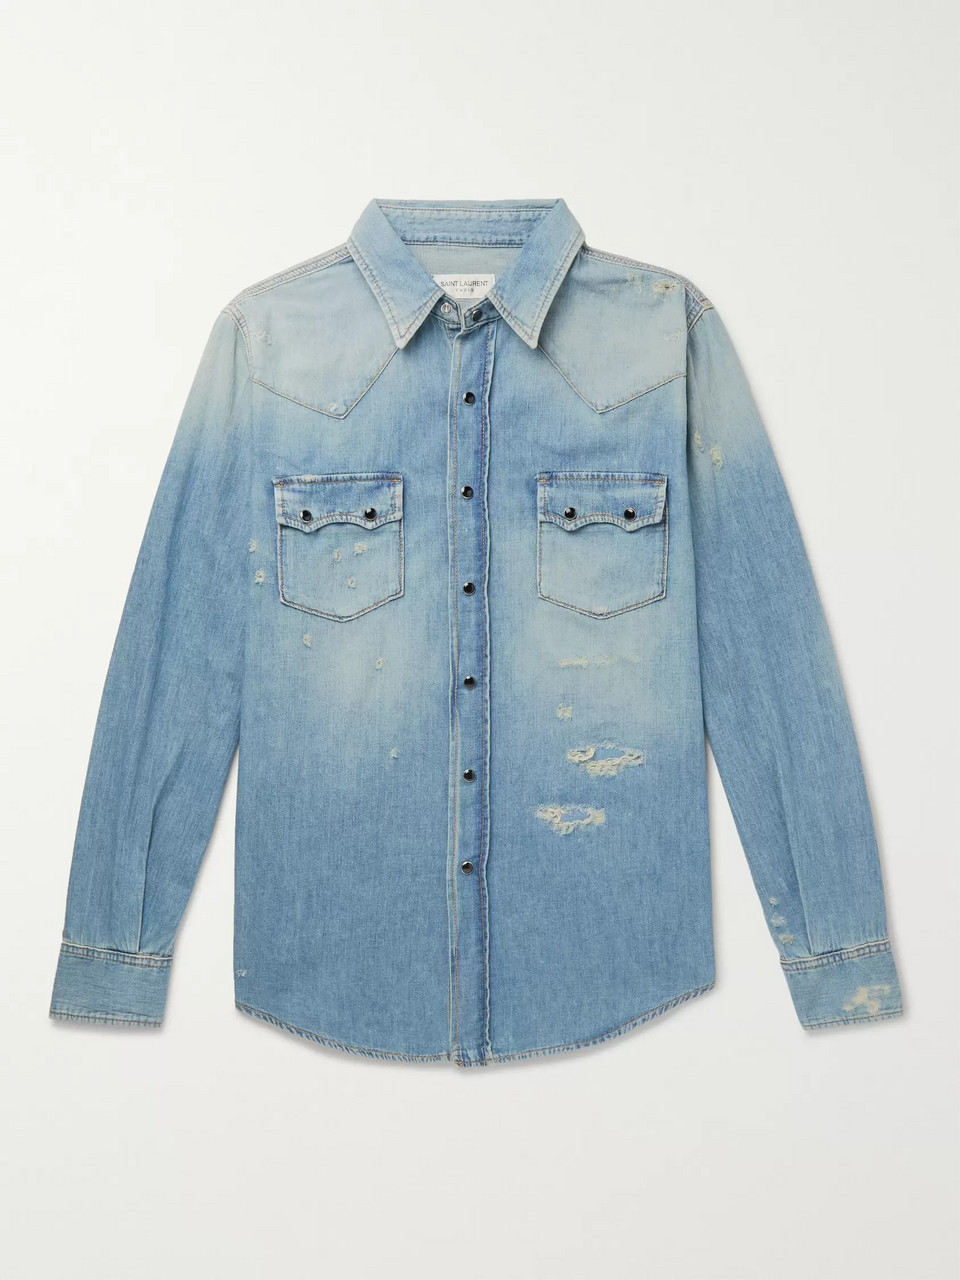 SAINT LAURENT Slim-Fit Distressed Denim Shirt